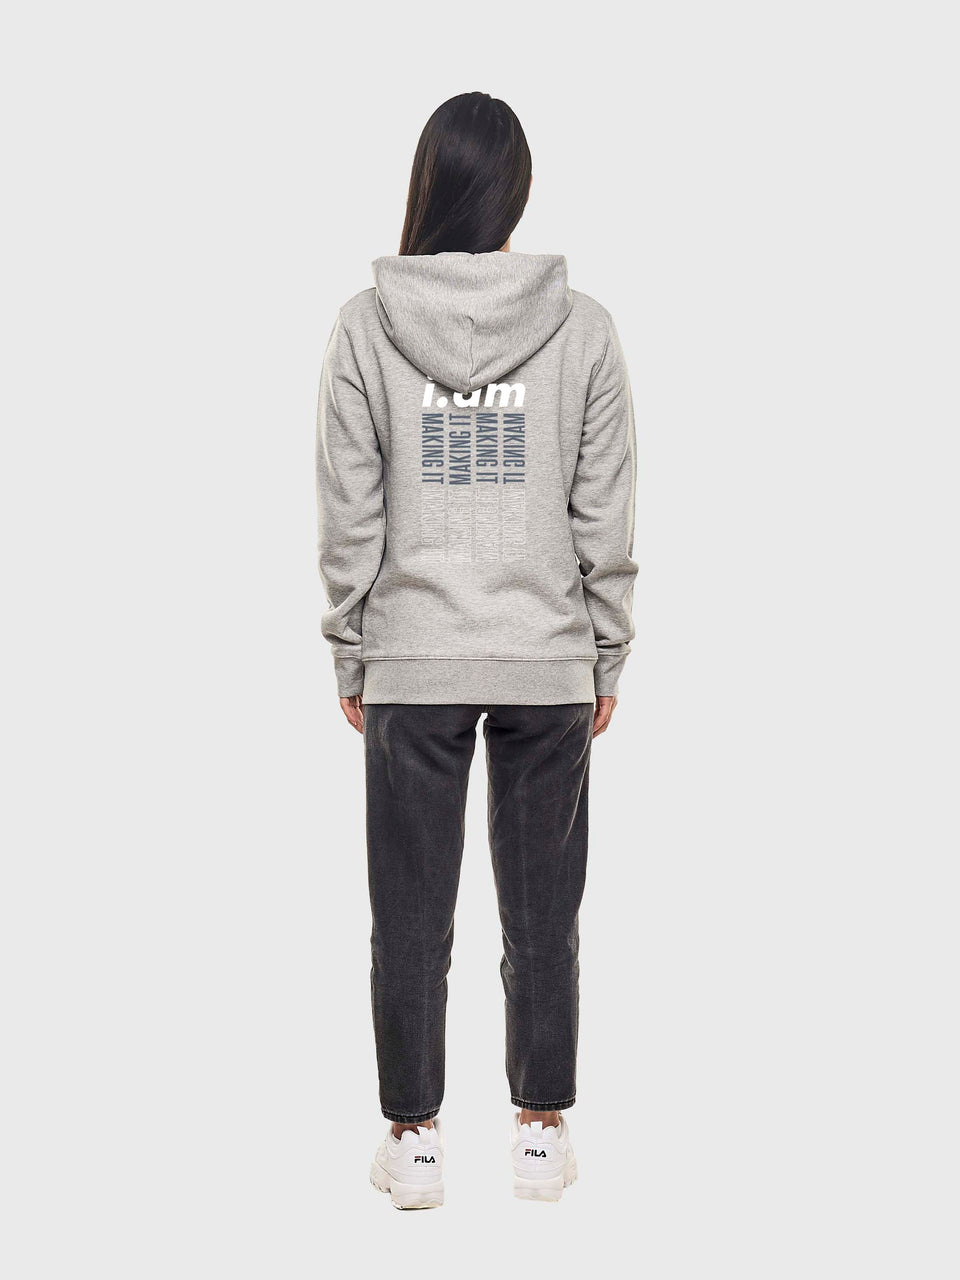 Making it - Grey - Unisex pull over hoodie